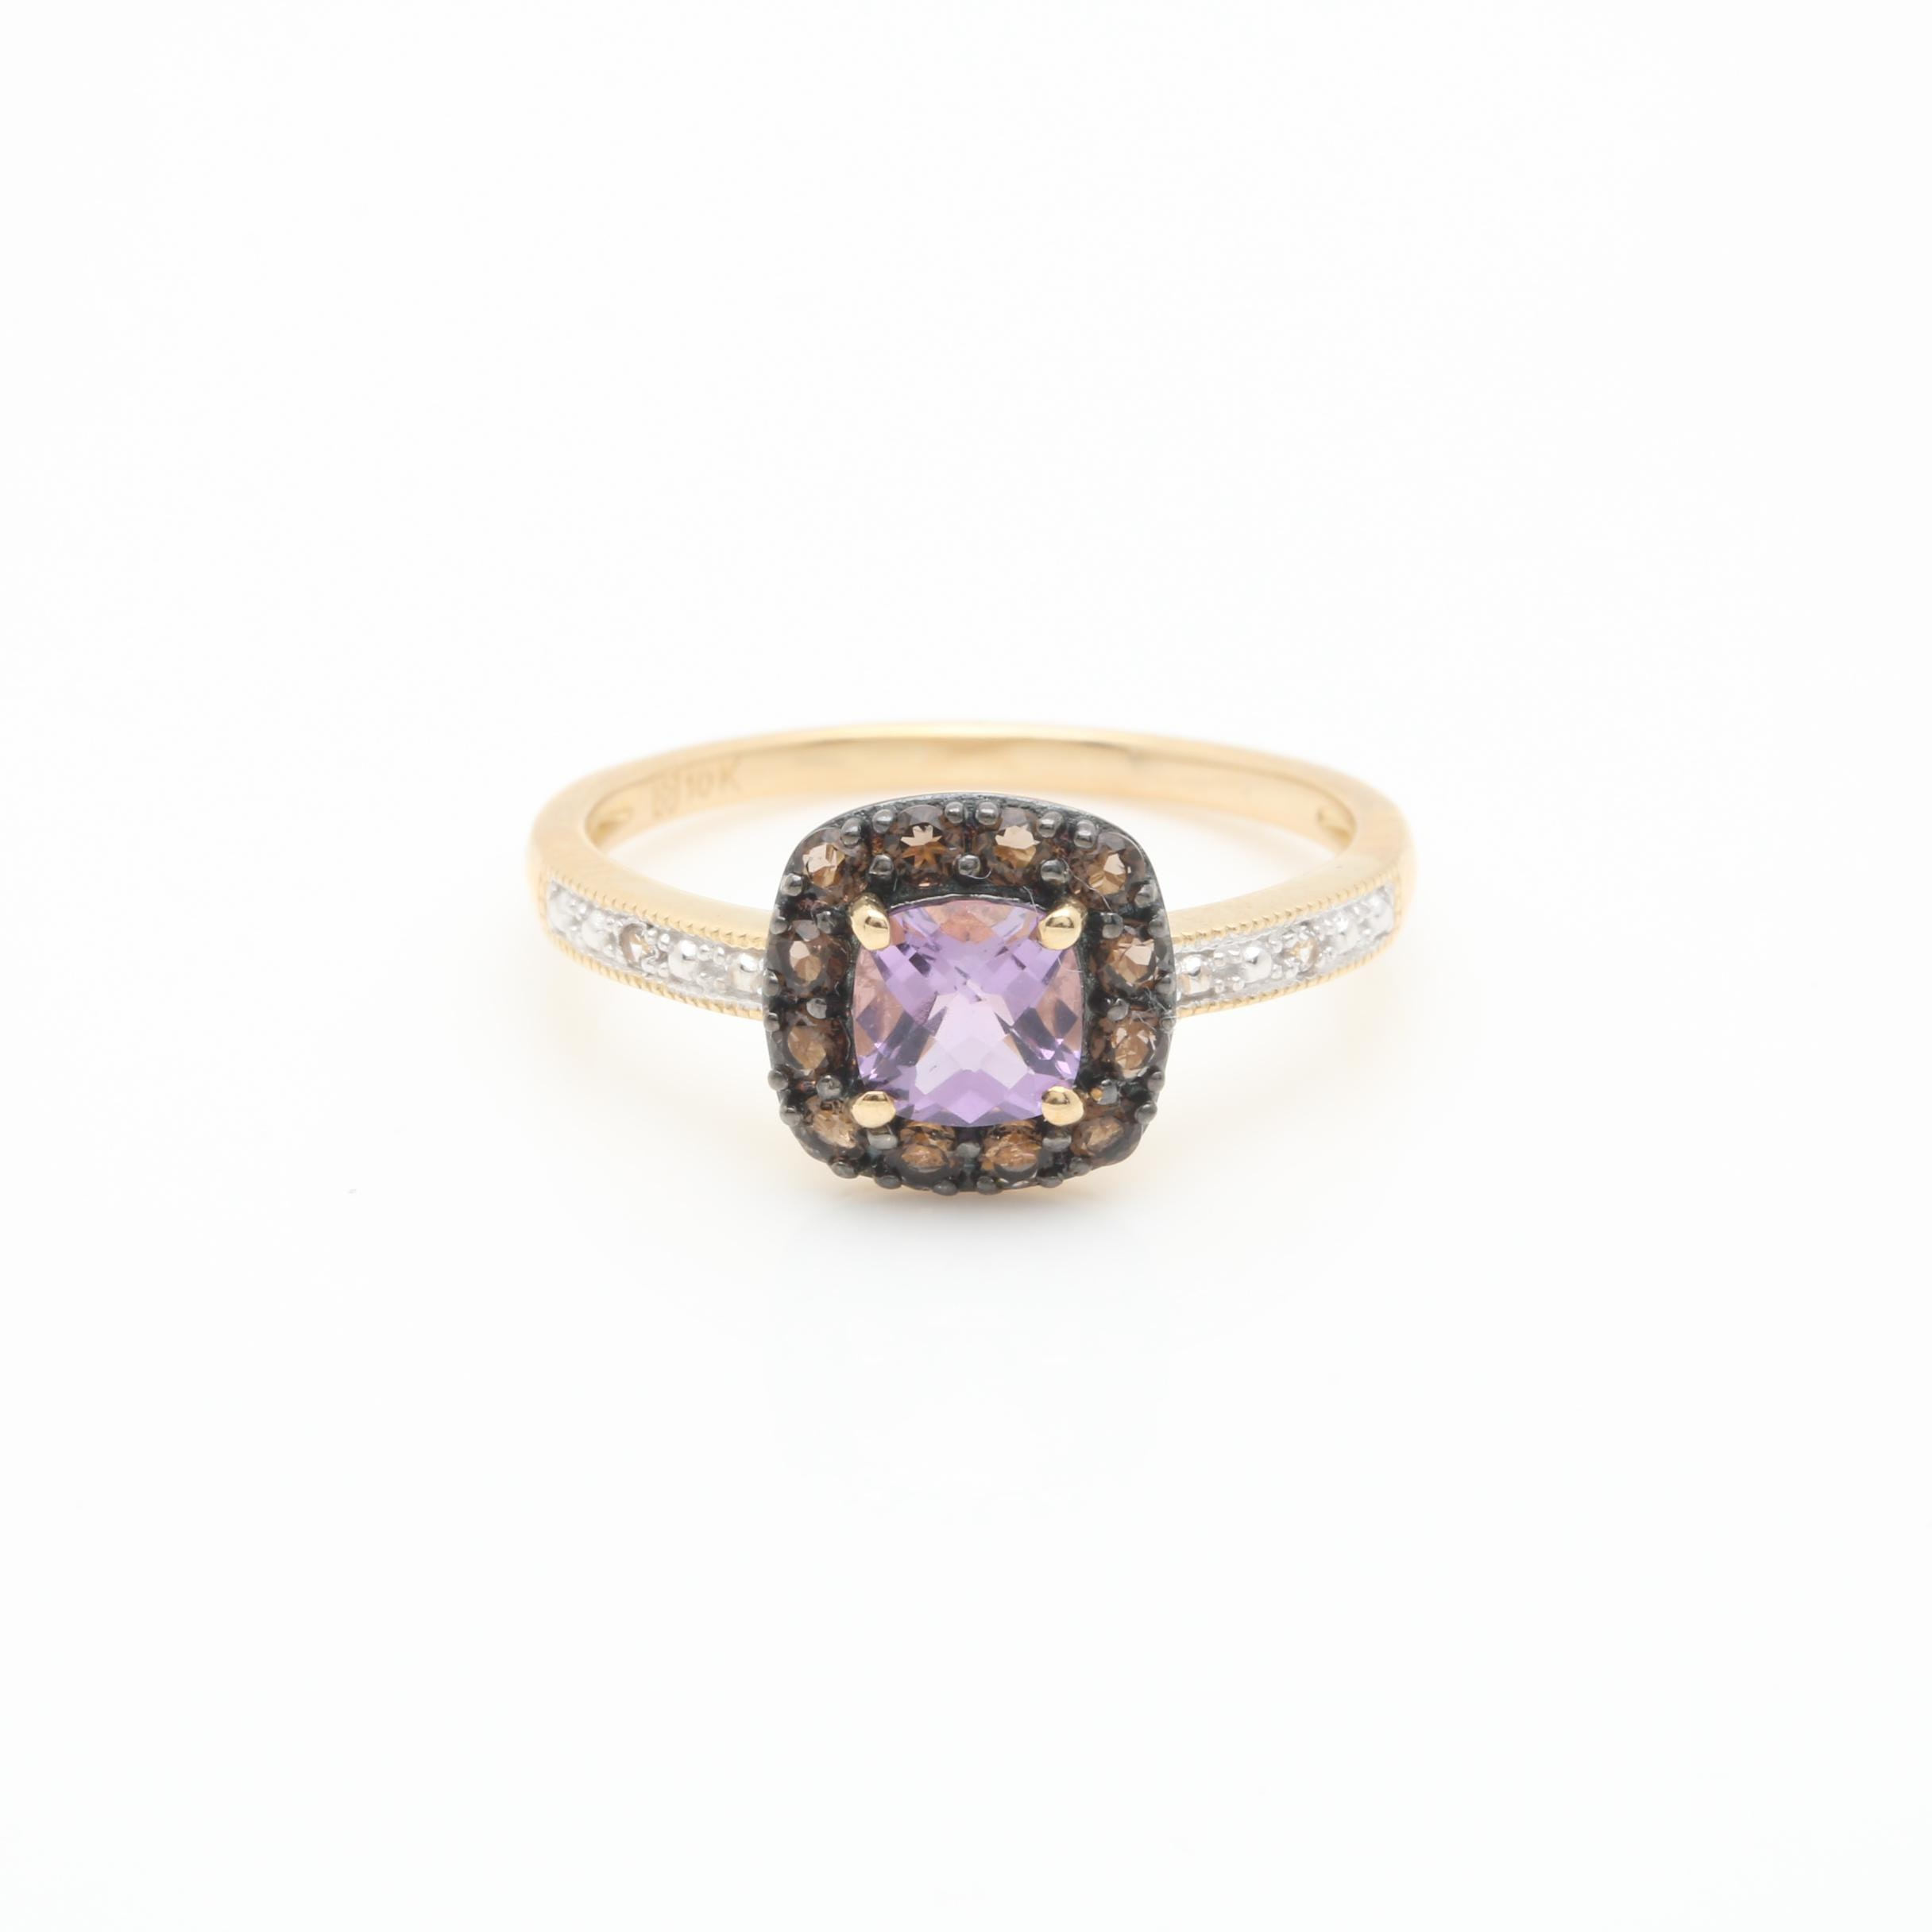 10K Yellow Gold Amethyst, Smoky Quartz and White Sapphire Ring